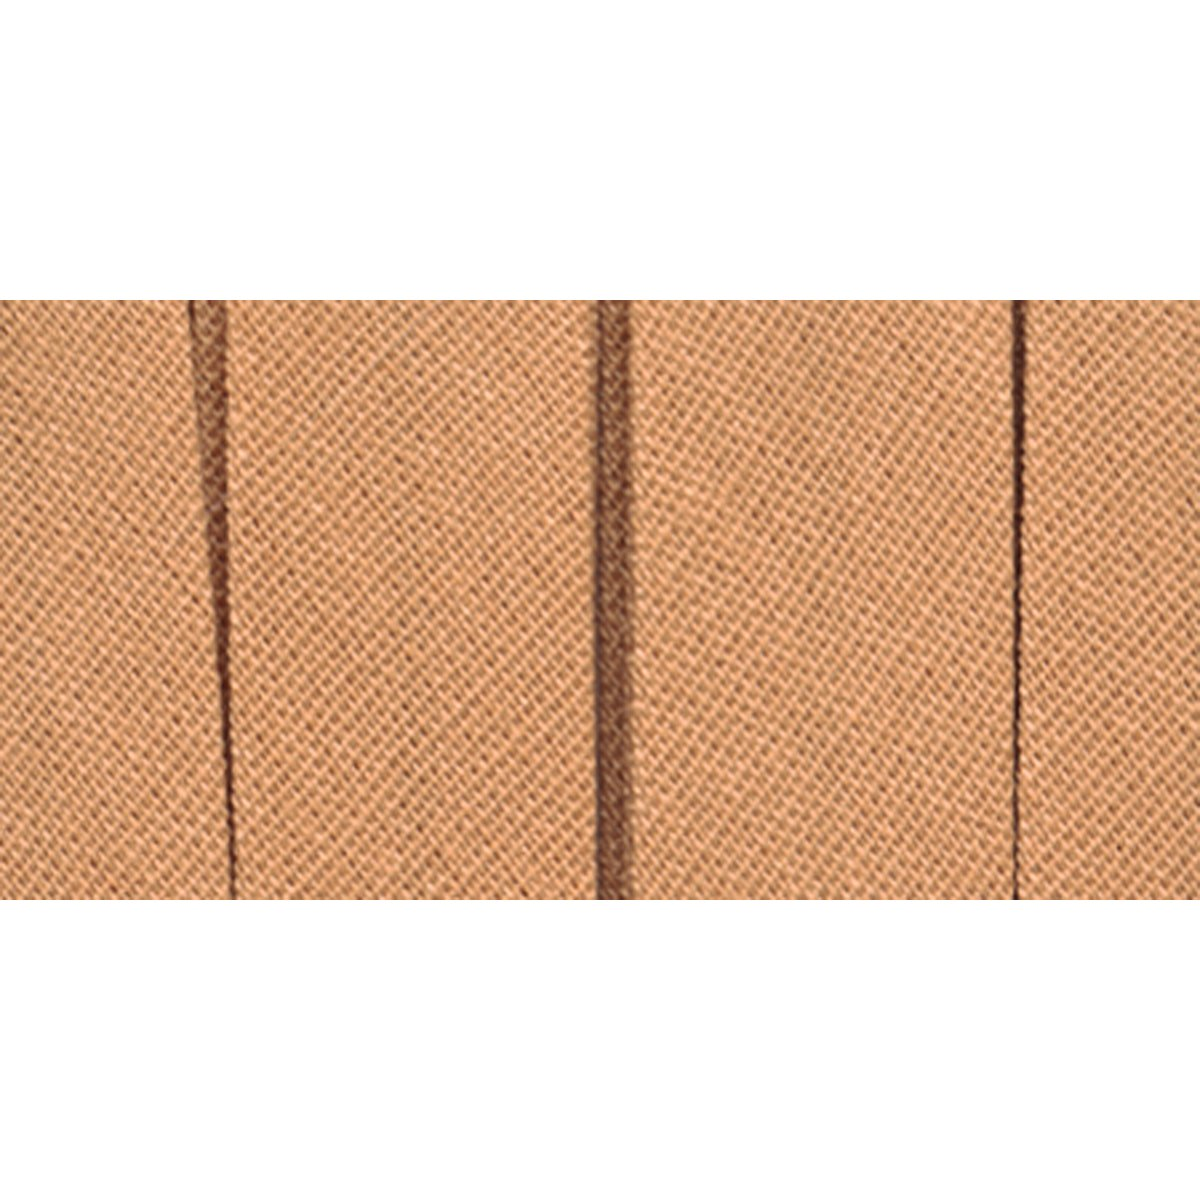 Wrights 117-200-765 Single Fold Bias Tape, Mocha, 4-Yard Notions - In Network